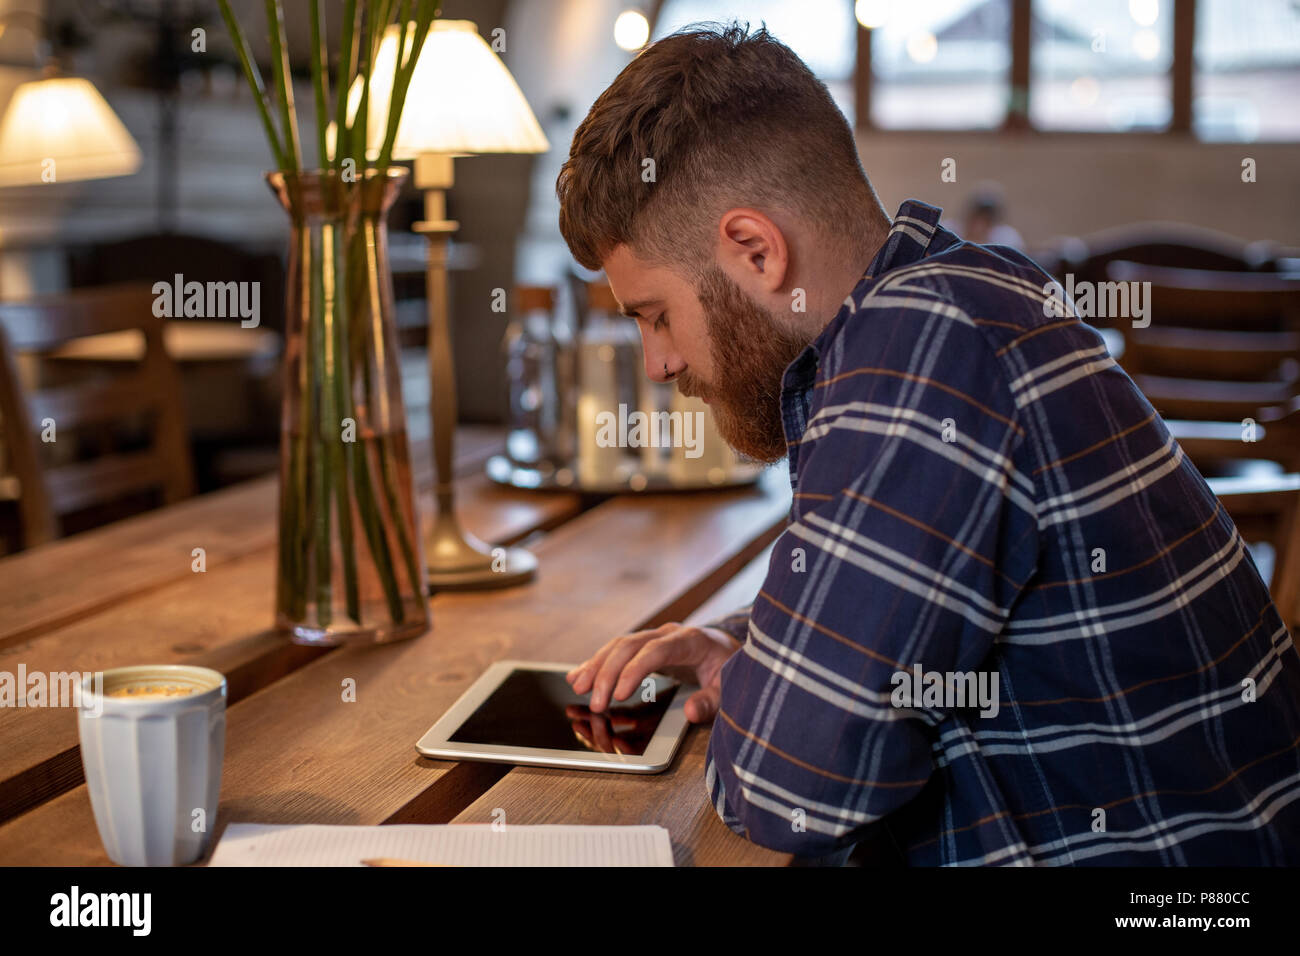 Freelancer dressed in casual outfit focus on reading news and looking on digital tablet while sitting in cozy urban cafe. - Stock Image